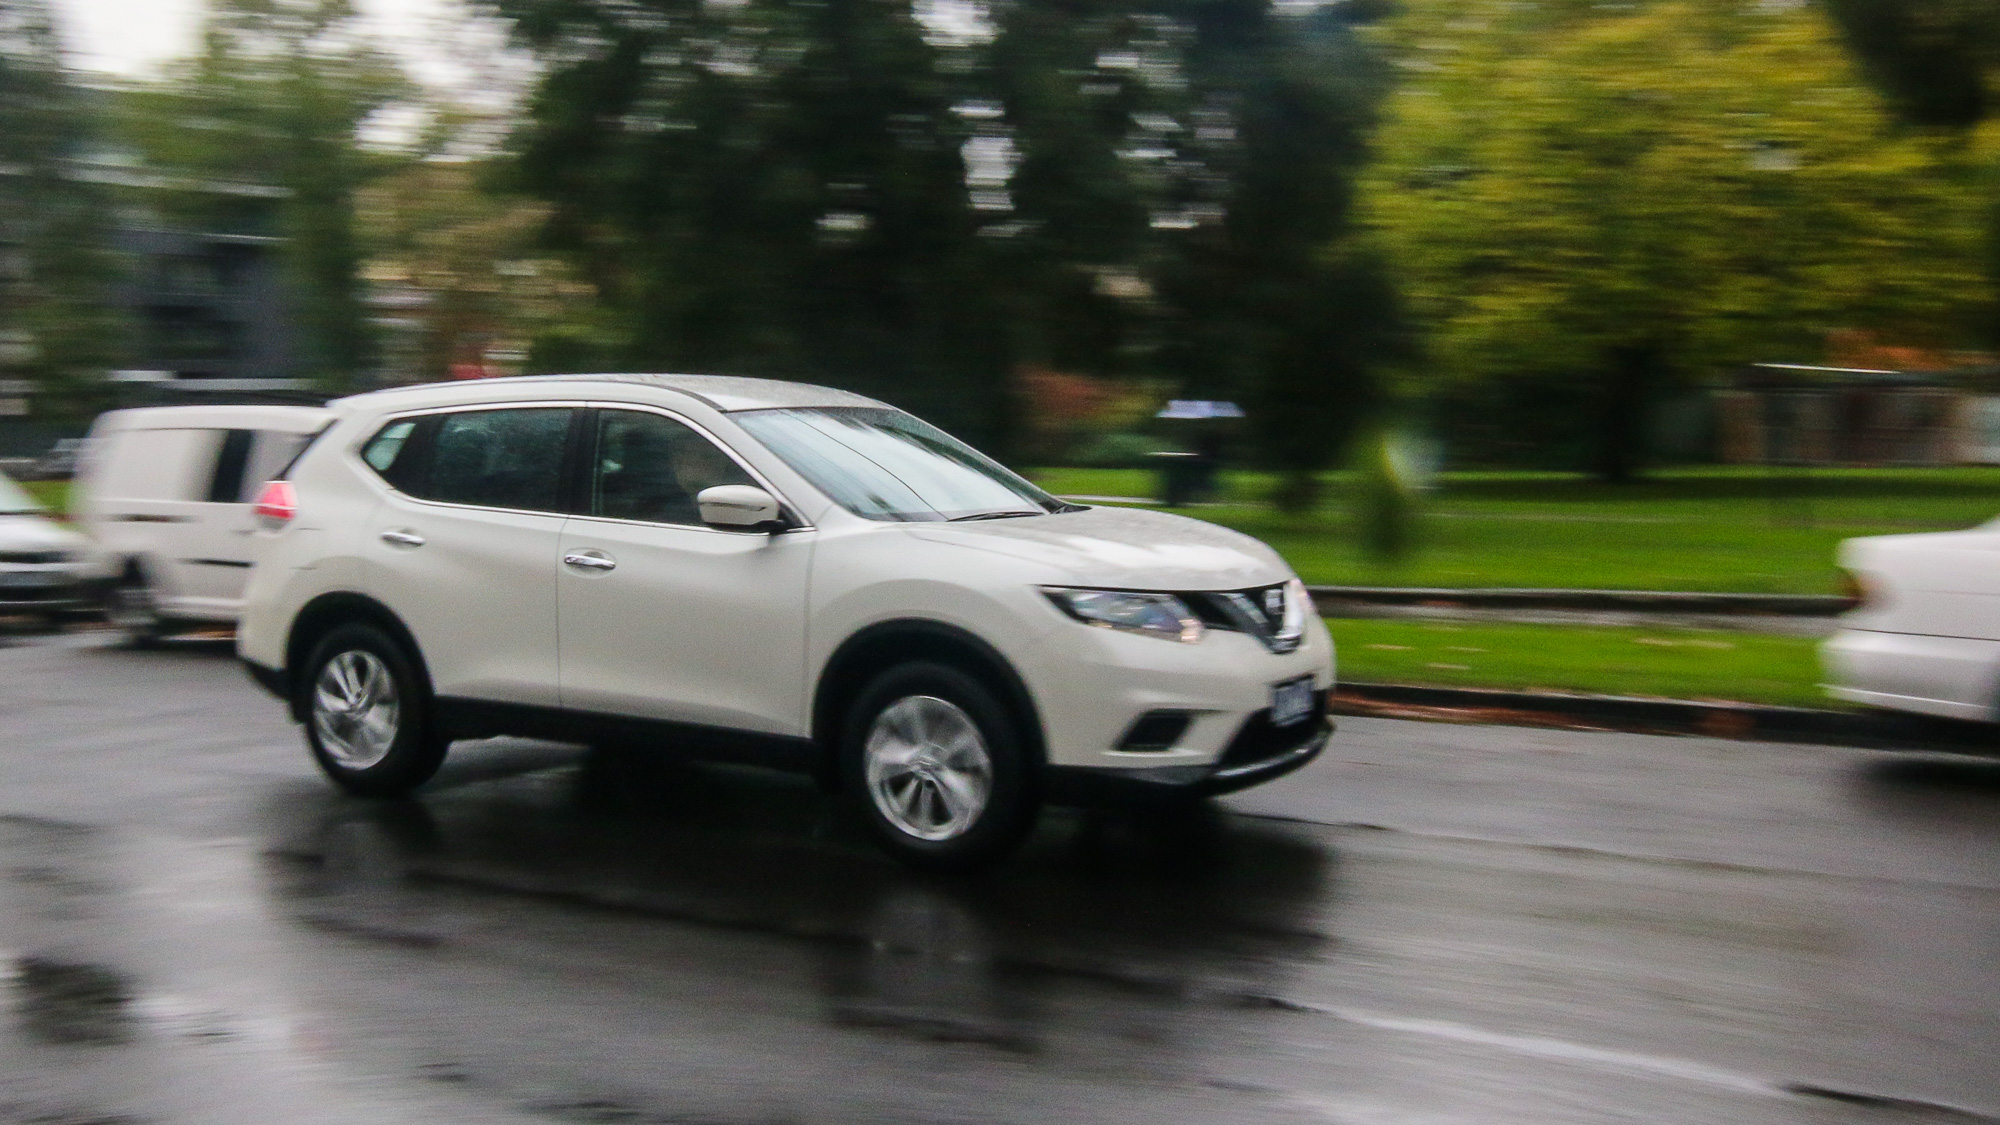 2014 nissan x trail review st 2 0l caradvice. Black Bedroom Furniture Sets. Home Design Ideas